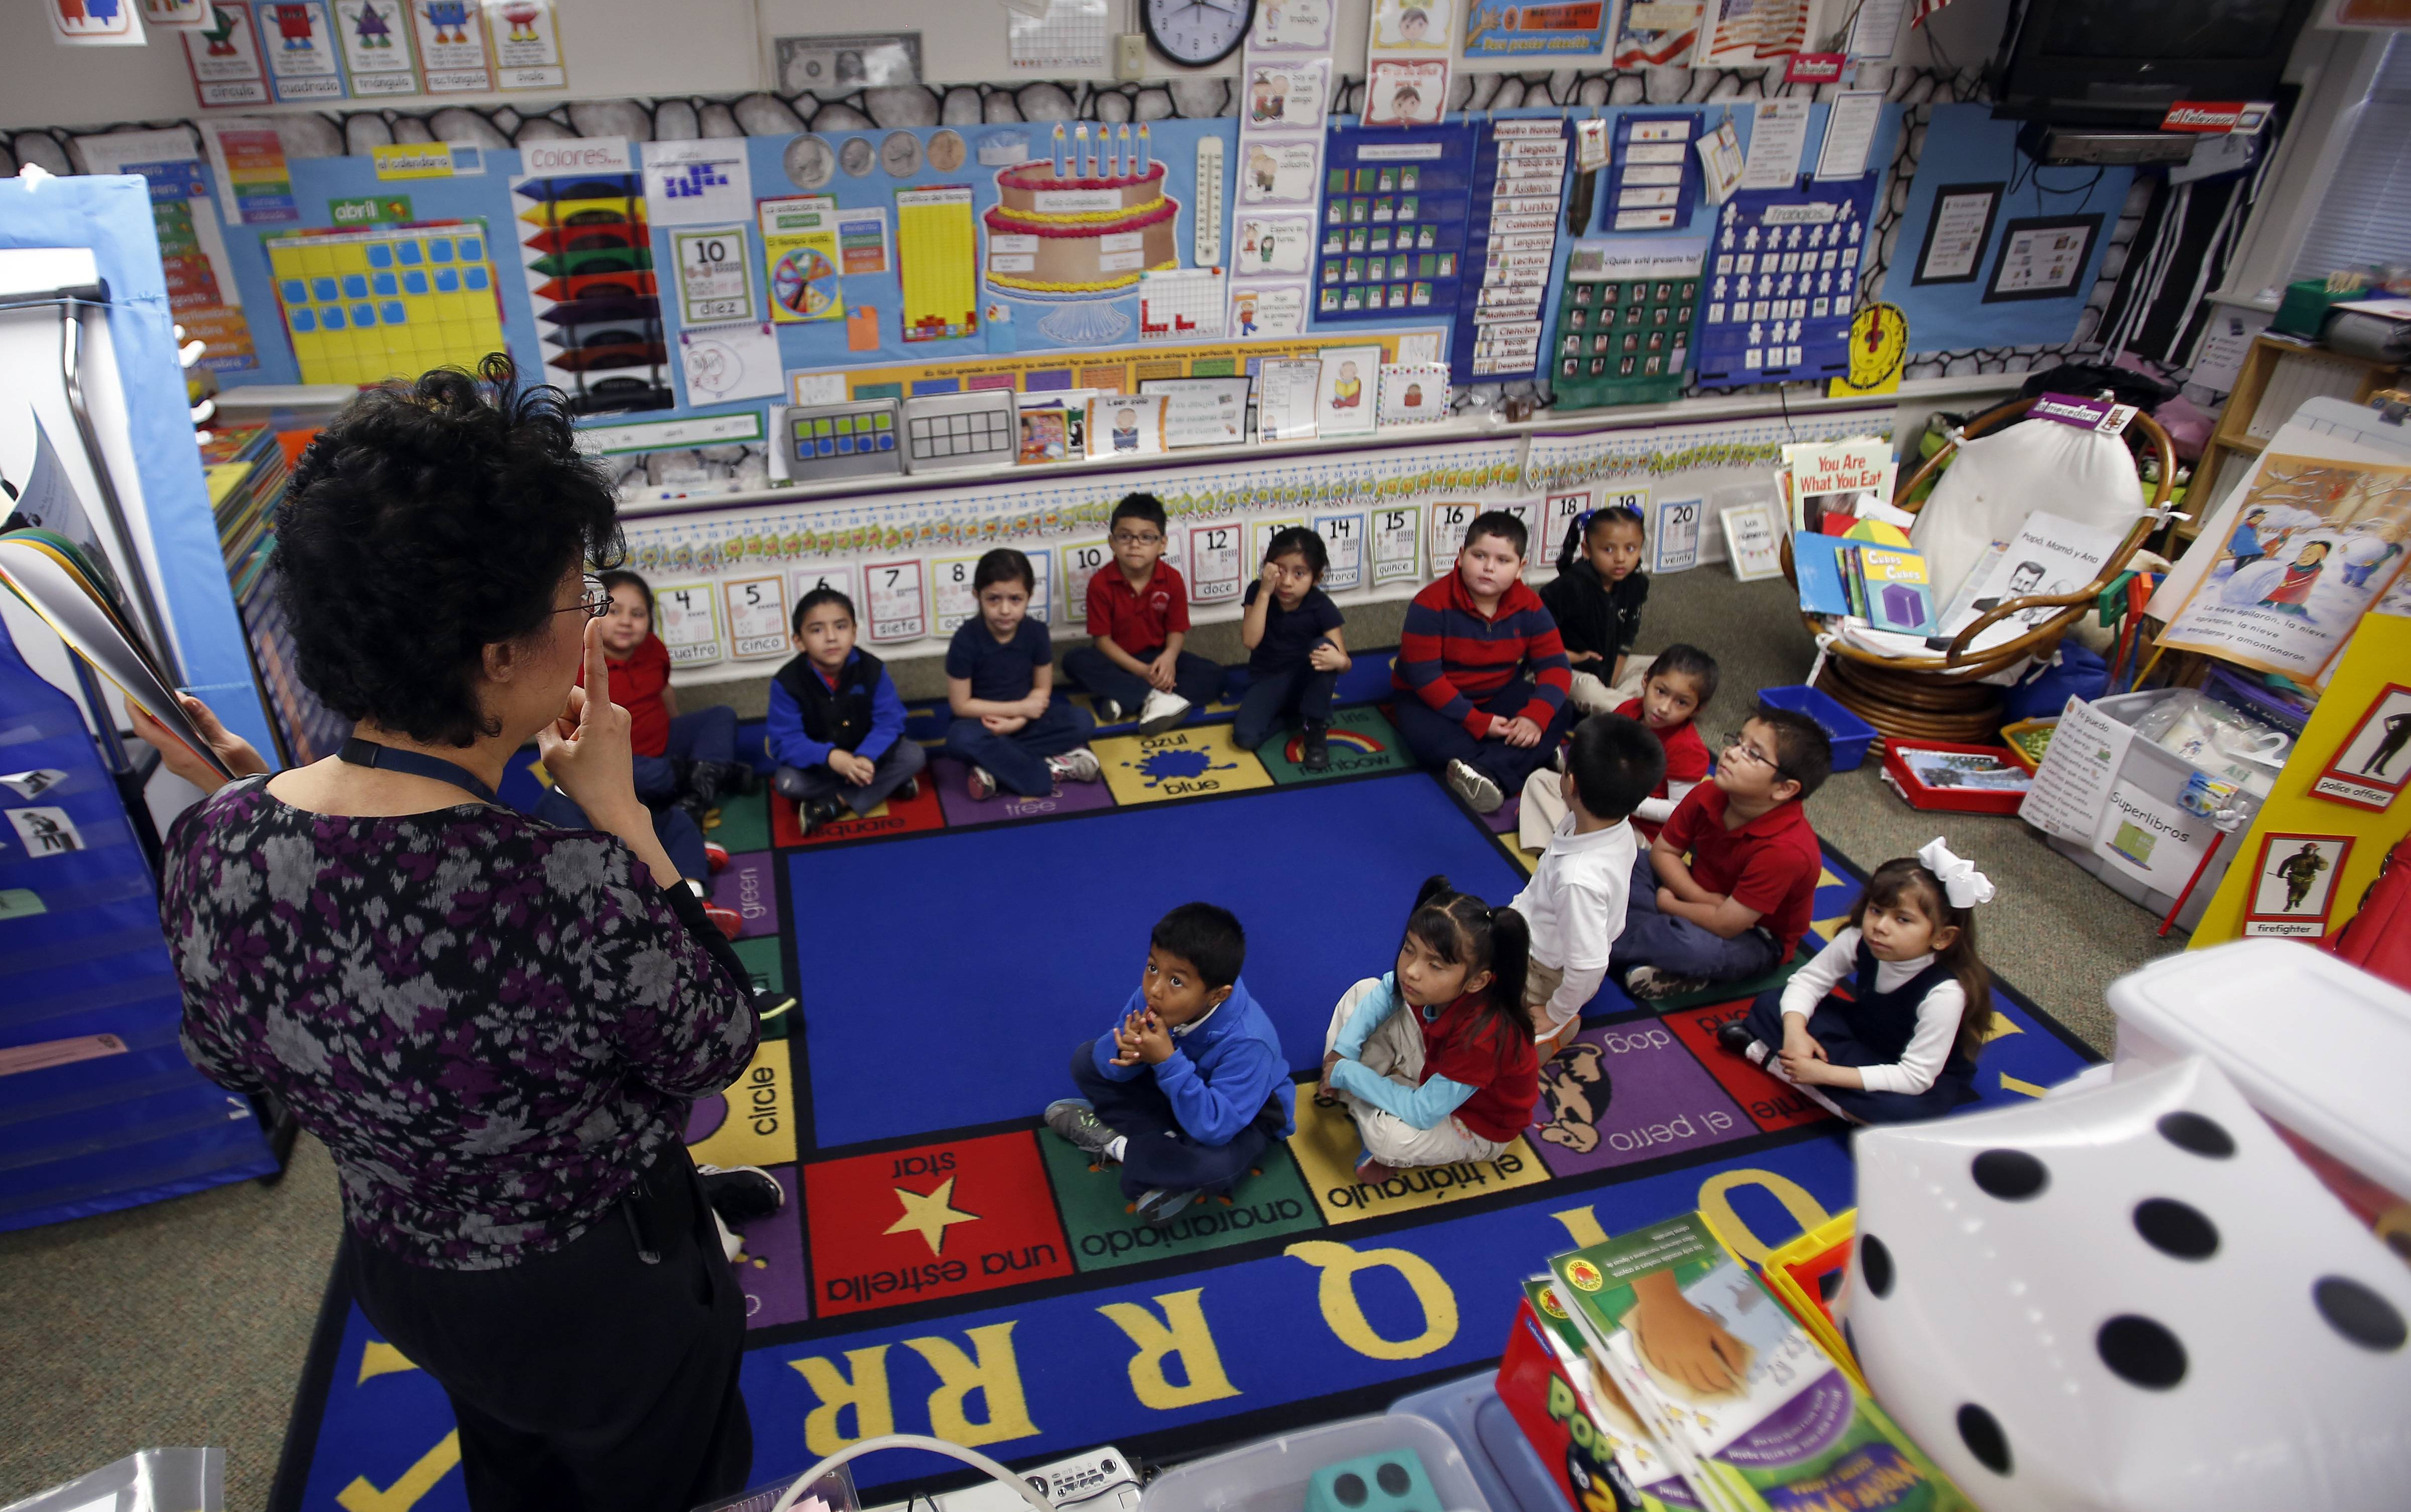 U-46 officials unsure about kindergarten, increasing taxes